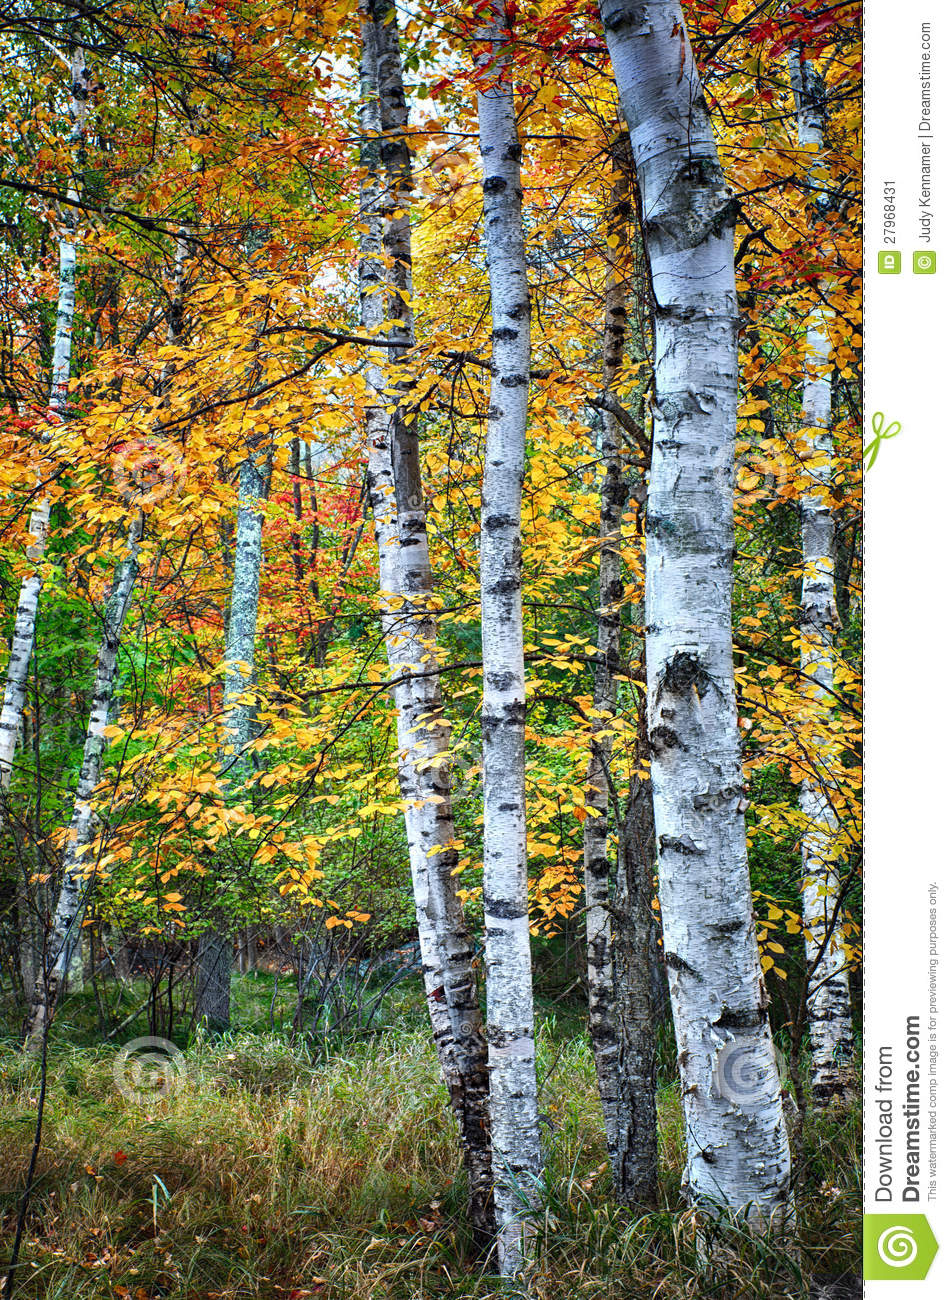 Birch Trees In Autumn Season Stock Image - Image of leaf, colorful ...